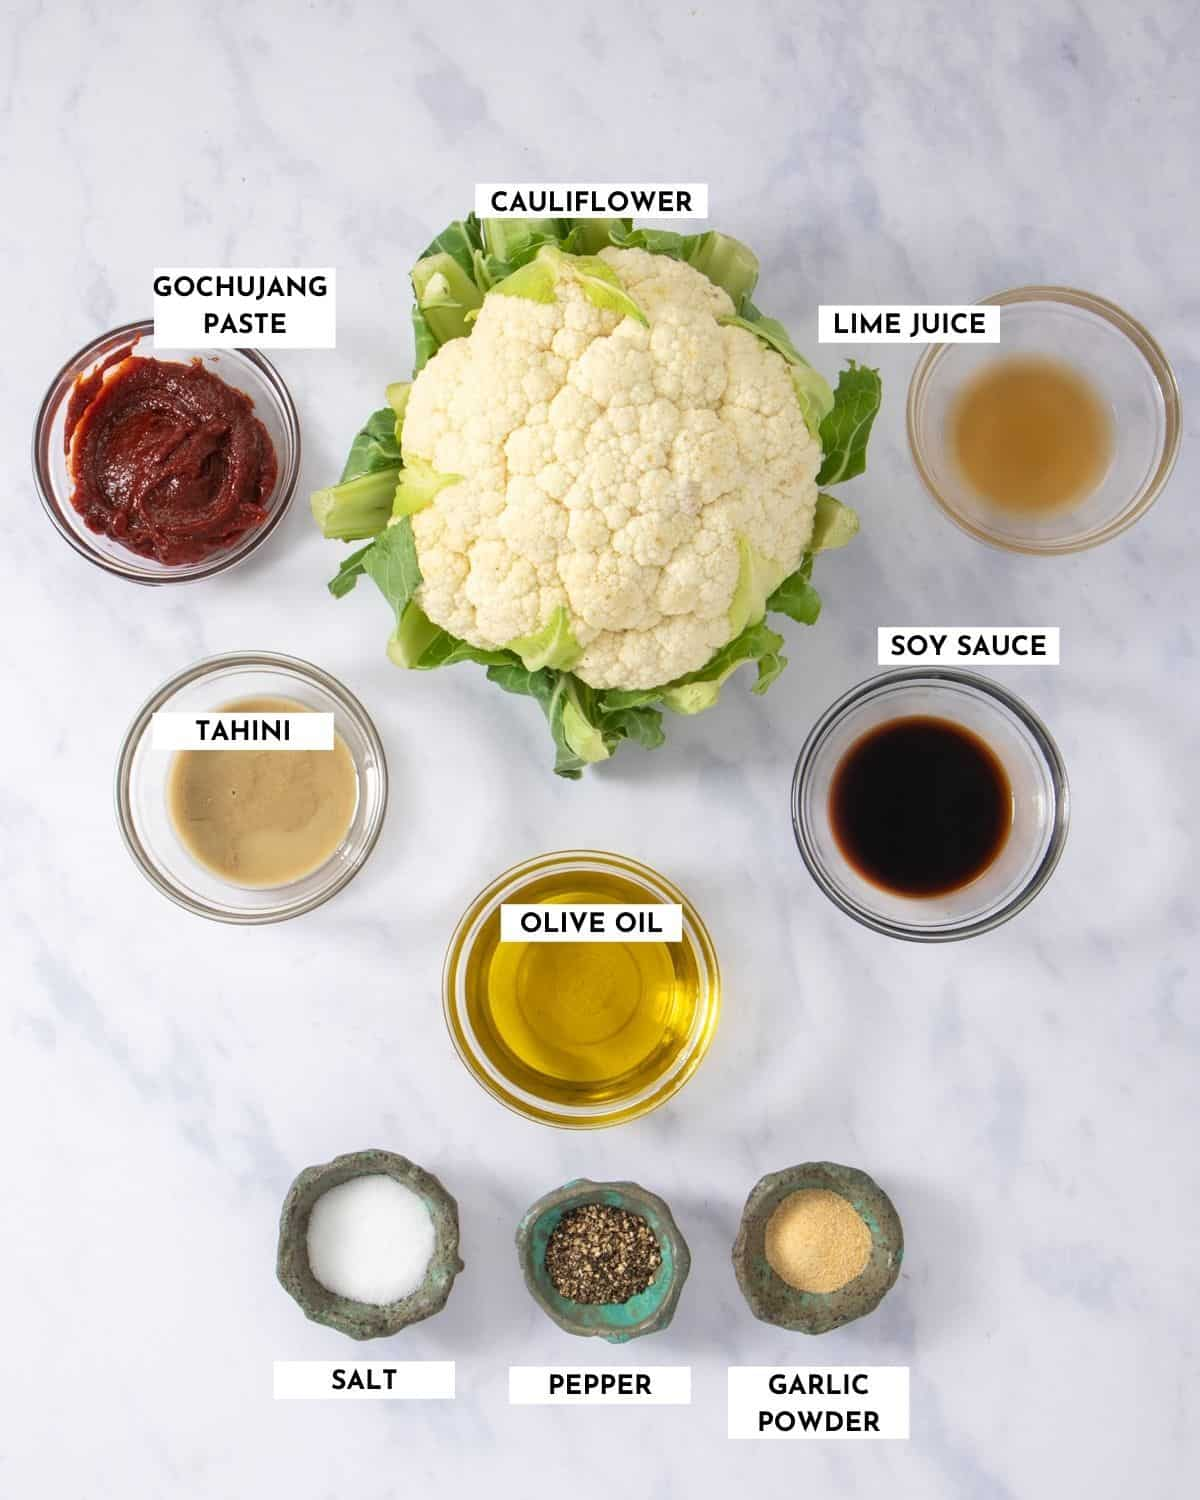 Labeled list of ingredients for making dish - check recipe card for details!